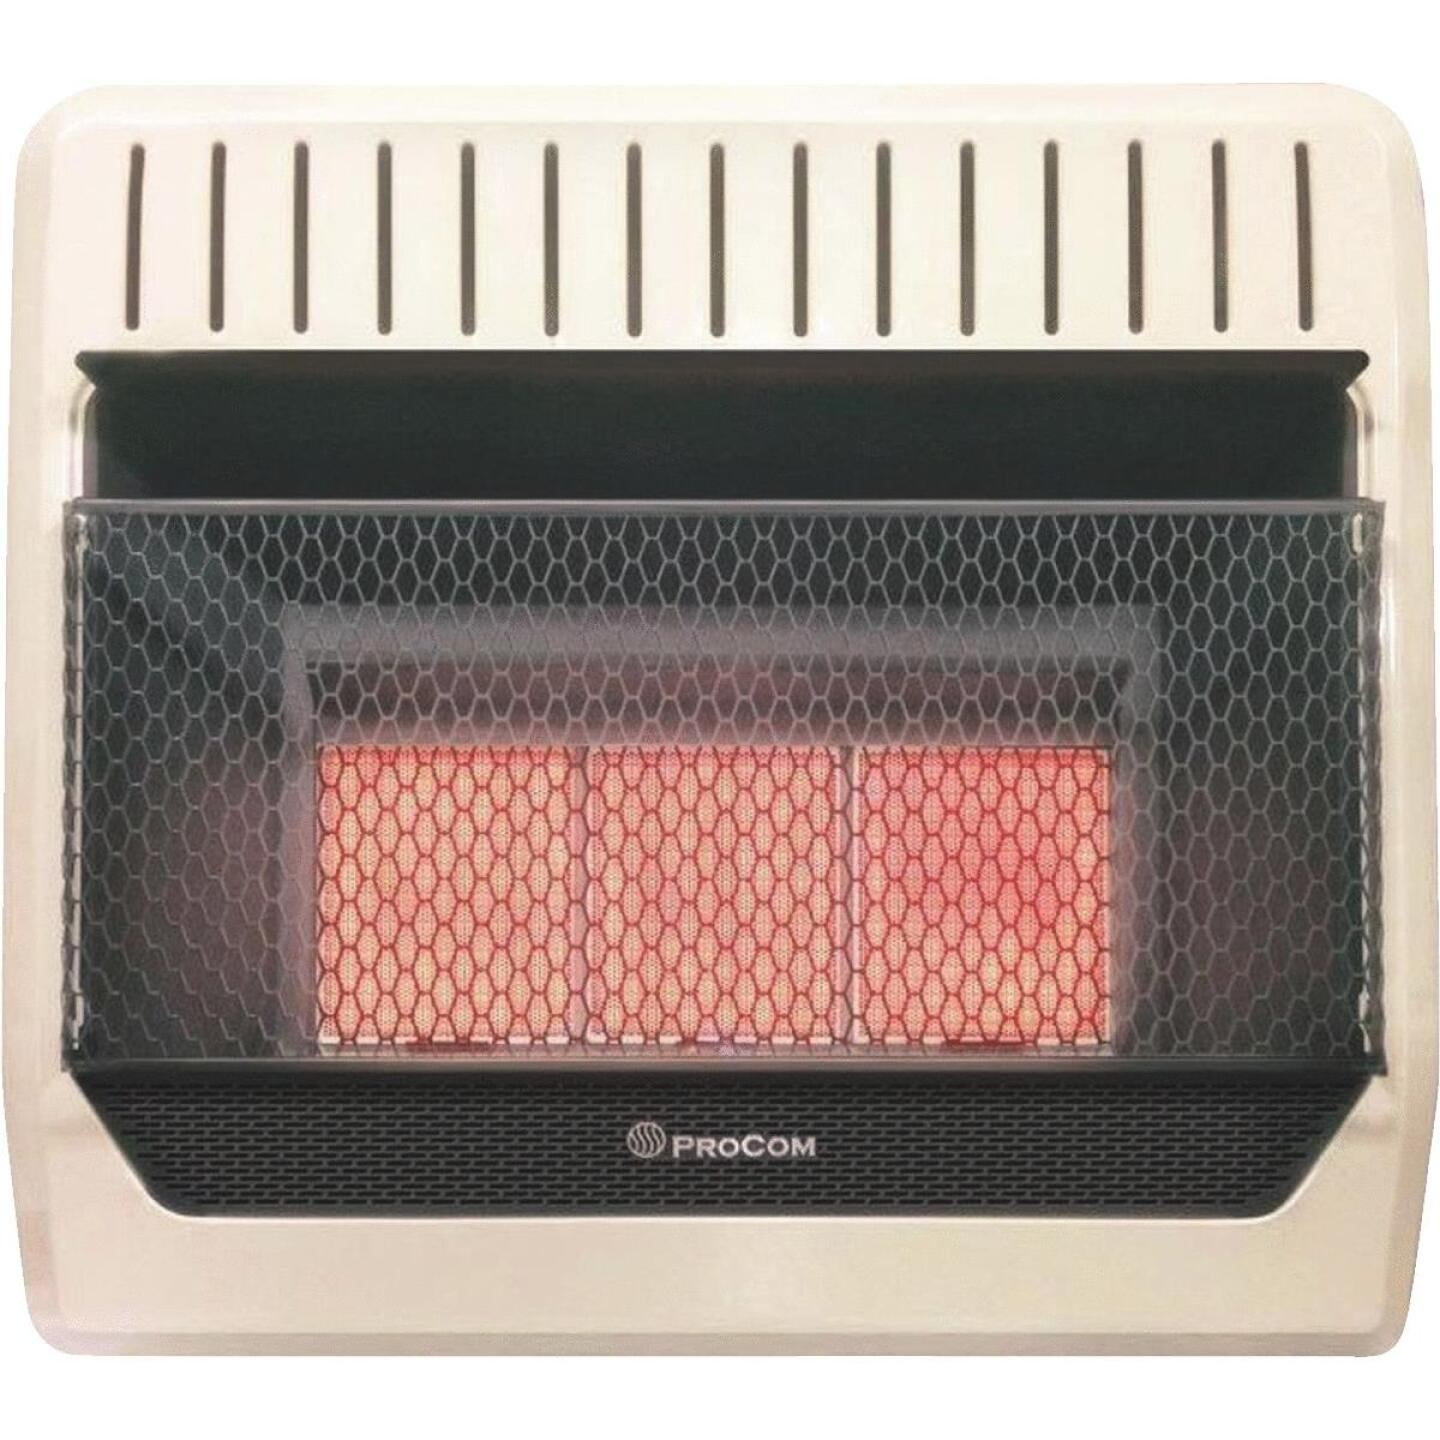 ProCom 30,000 BTU Natural Gas Vent-Free Infrared Plaque Gas Wall Heater Image 1